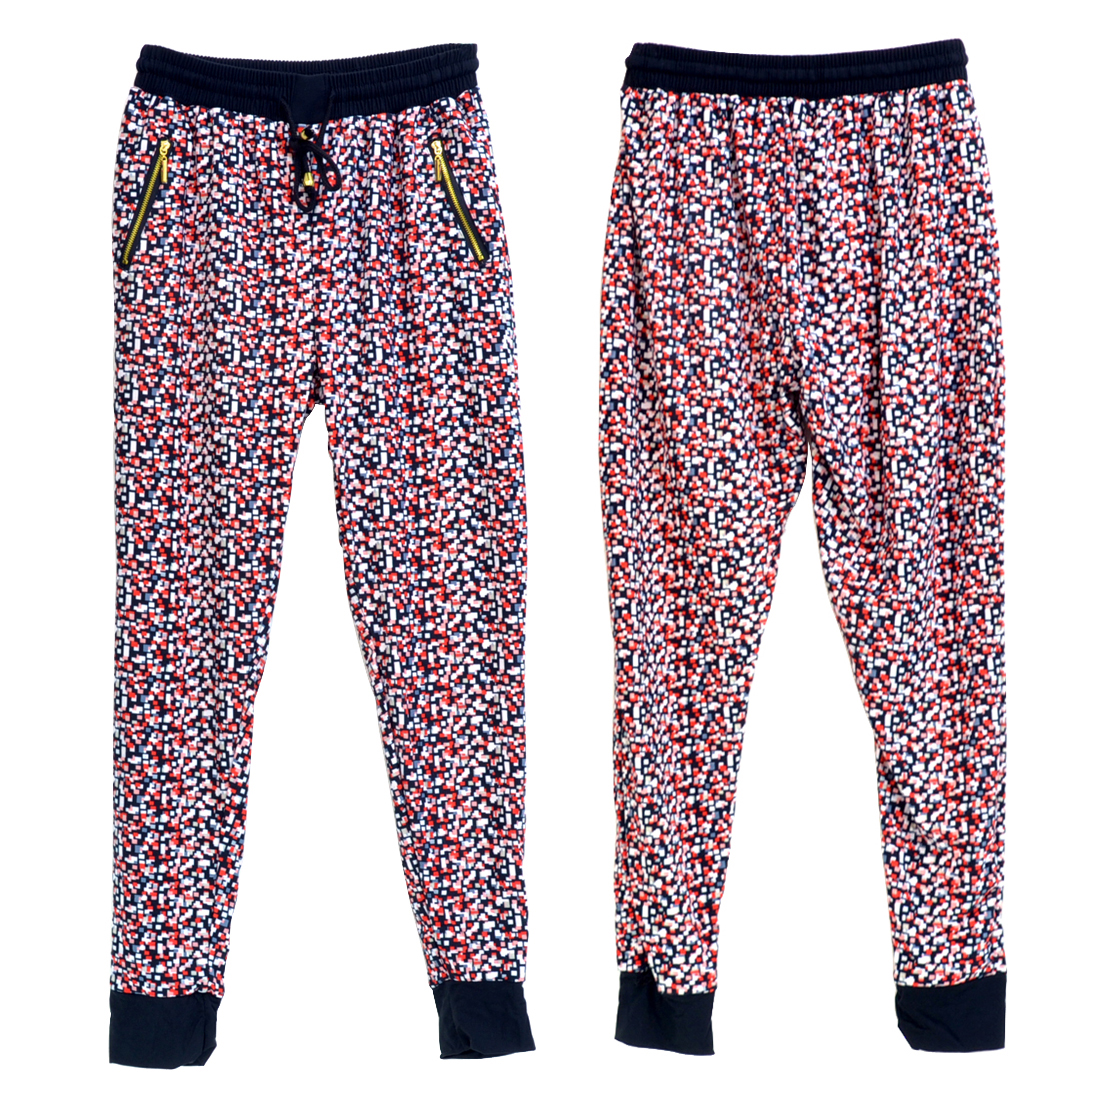 Digital Print Jogger Pants with Elastic Drawstring Waist